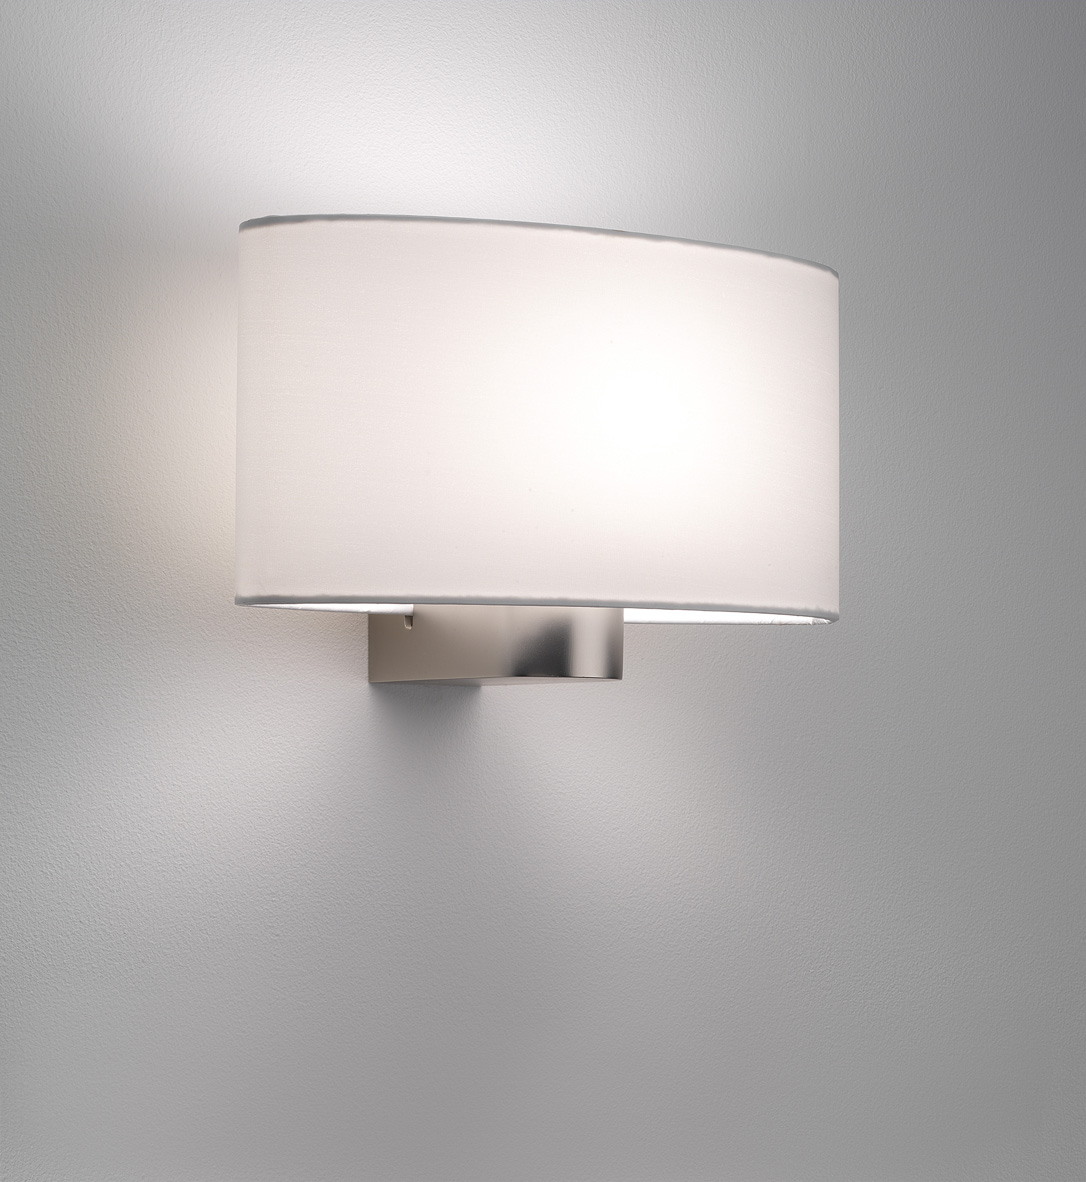 Modern Wall Lamp Shades www.pixshark.com - Images Galleries With A Bite!